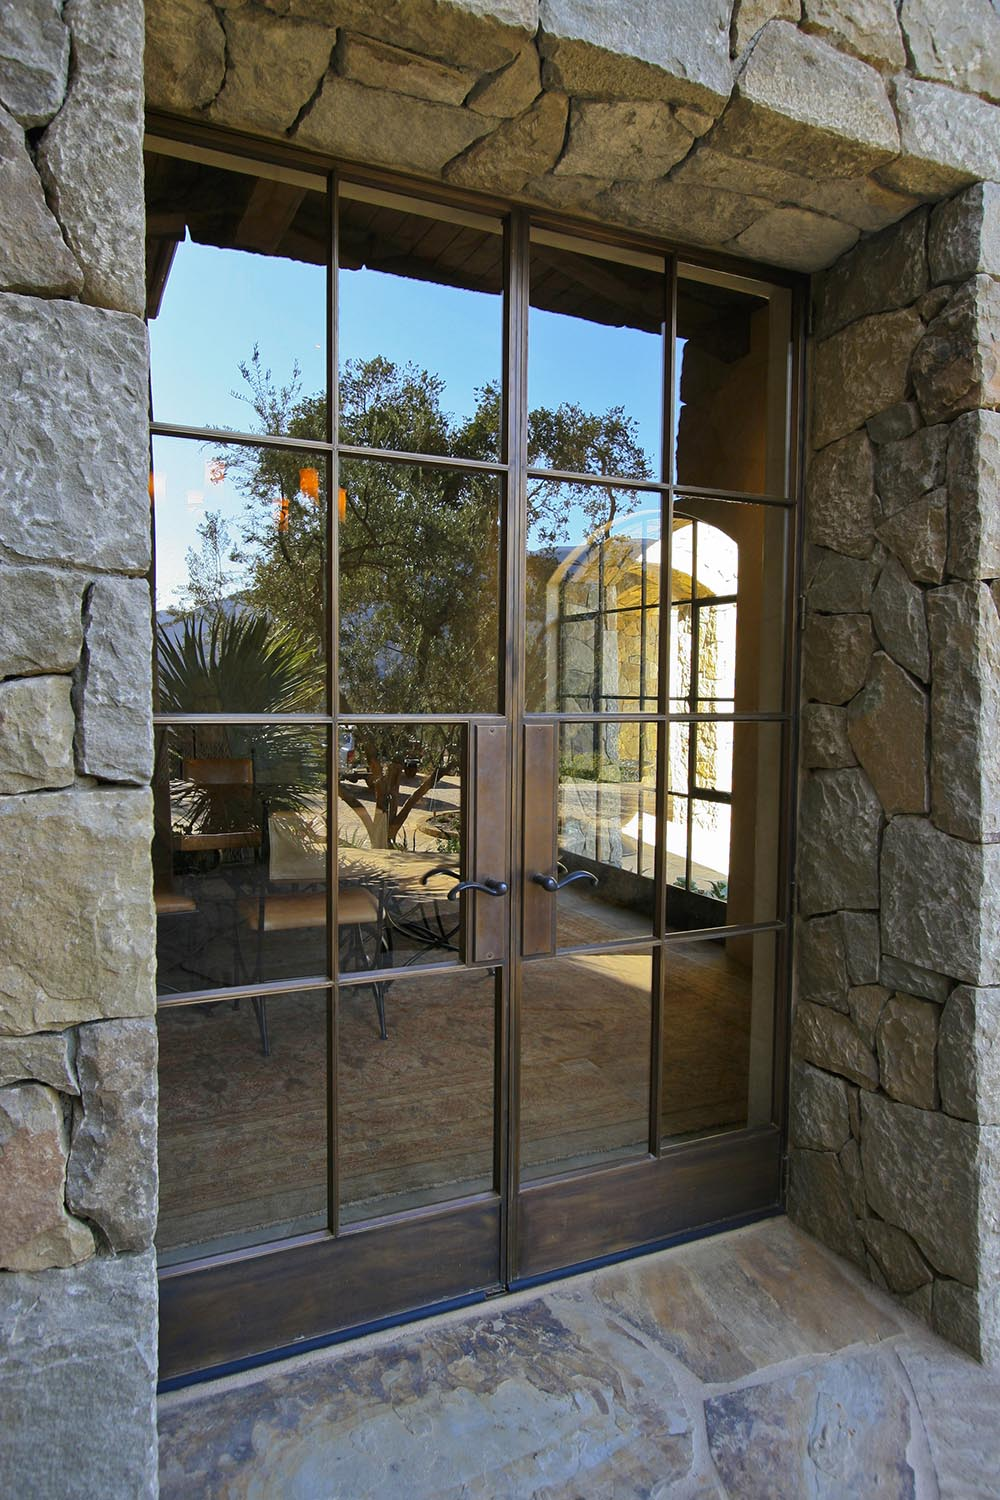 Bronze Doors, Bronze Windows, Window Designs, Bronze Window Forms, Steel Windows, Steel Doors, Bronze Windows & Stainless Steel Windows, Steel Doors, Bronze Doors, NFRC, custom steel doors, custom steel windows, thermally broken, nfrc, steel doors in new york, steel windows in new york, steel doors in southern california, steel windows in southern california, steel doors and windows in boston